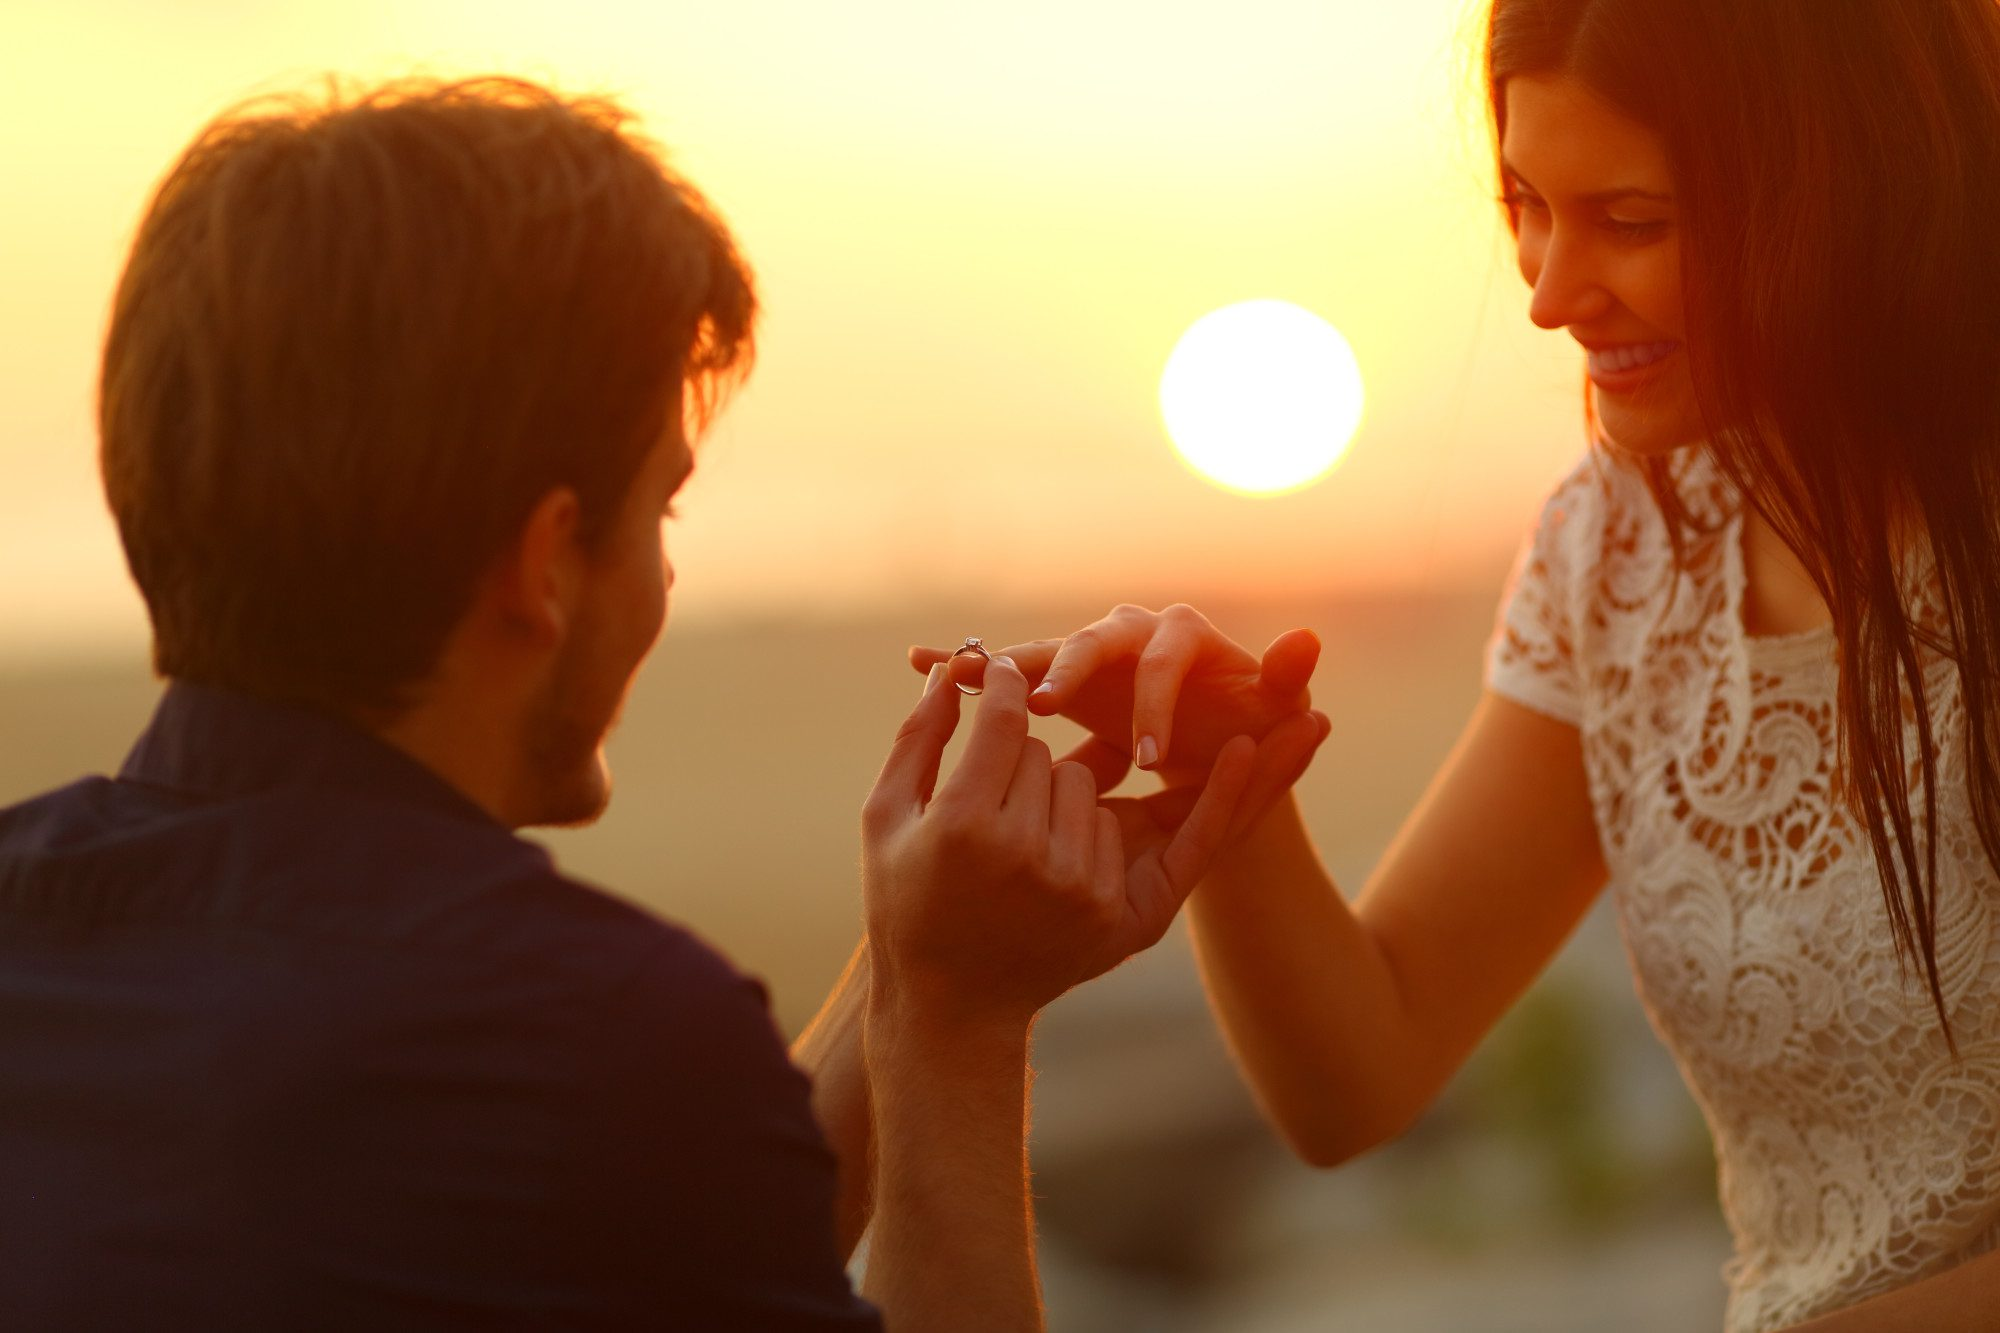 Profess Your Love: The 5 Best Proposal Ideas for Young Couples